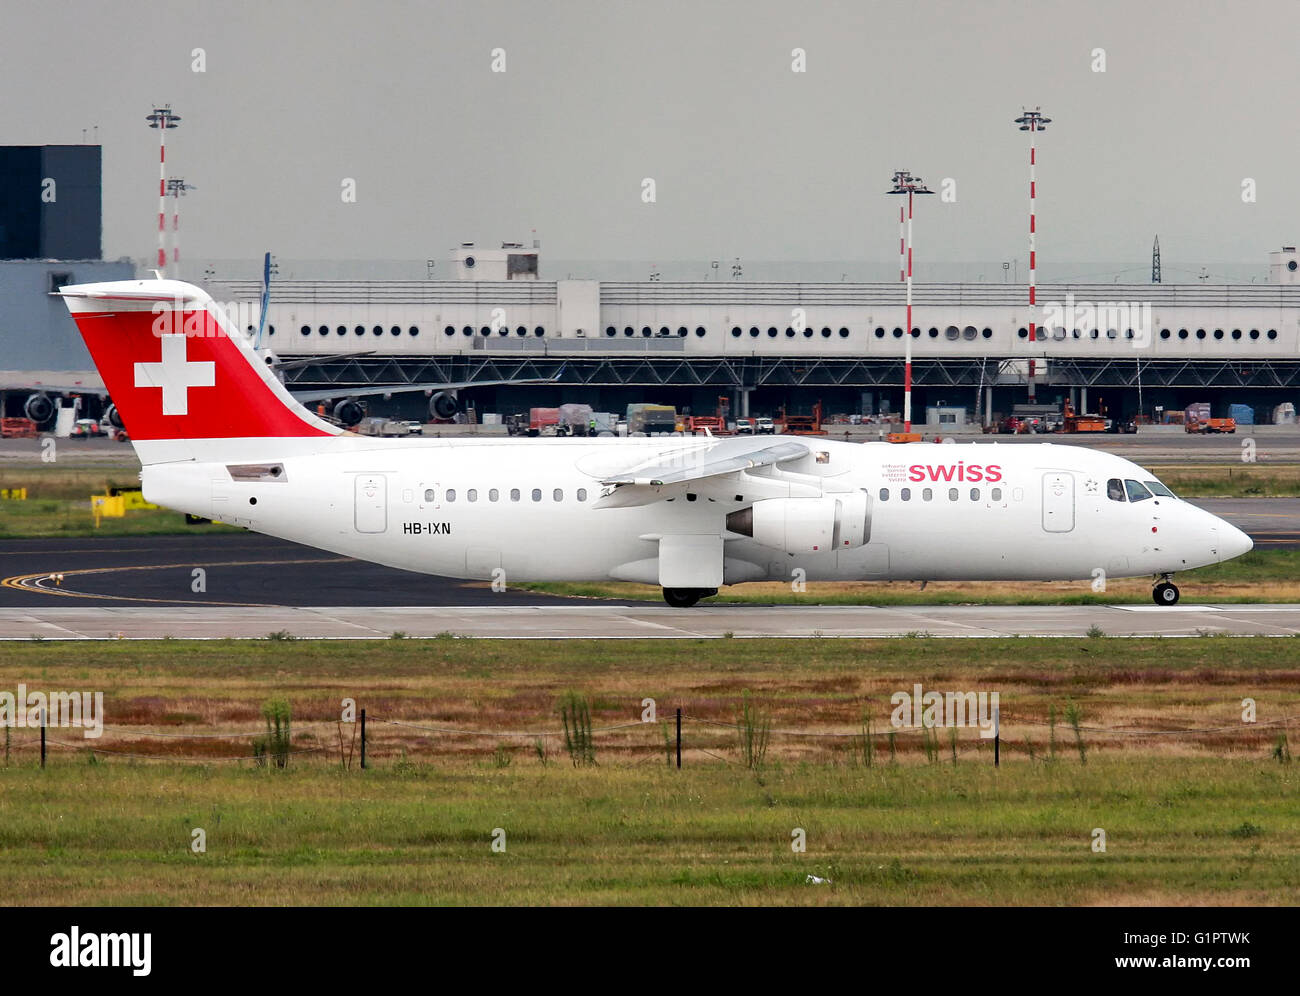 Swiss International Air Lines, British Aerospace Avro 146-RJ100. Photographed at Malpensa airport, Milan, Italy - Stock Image